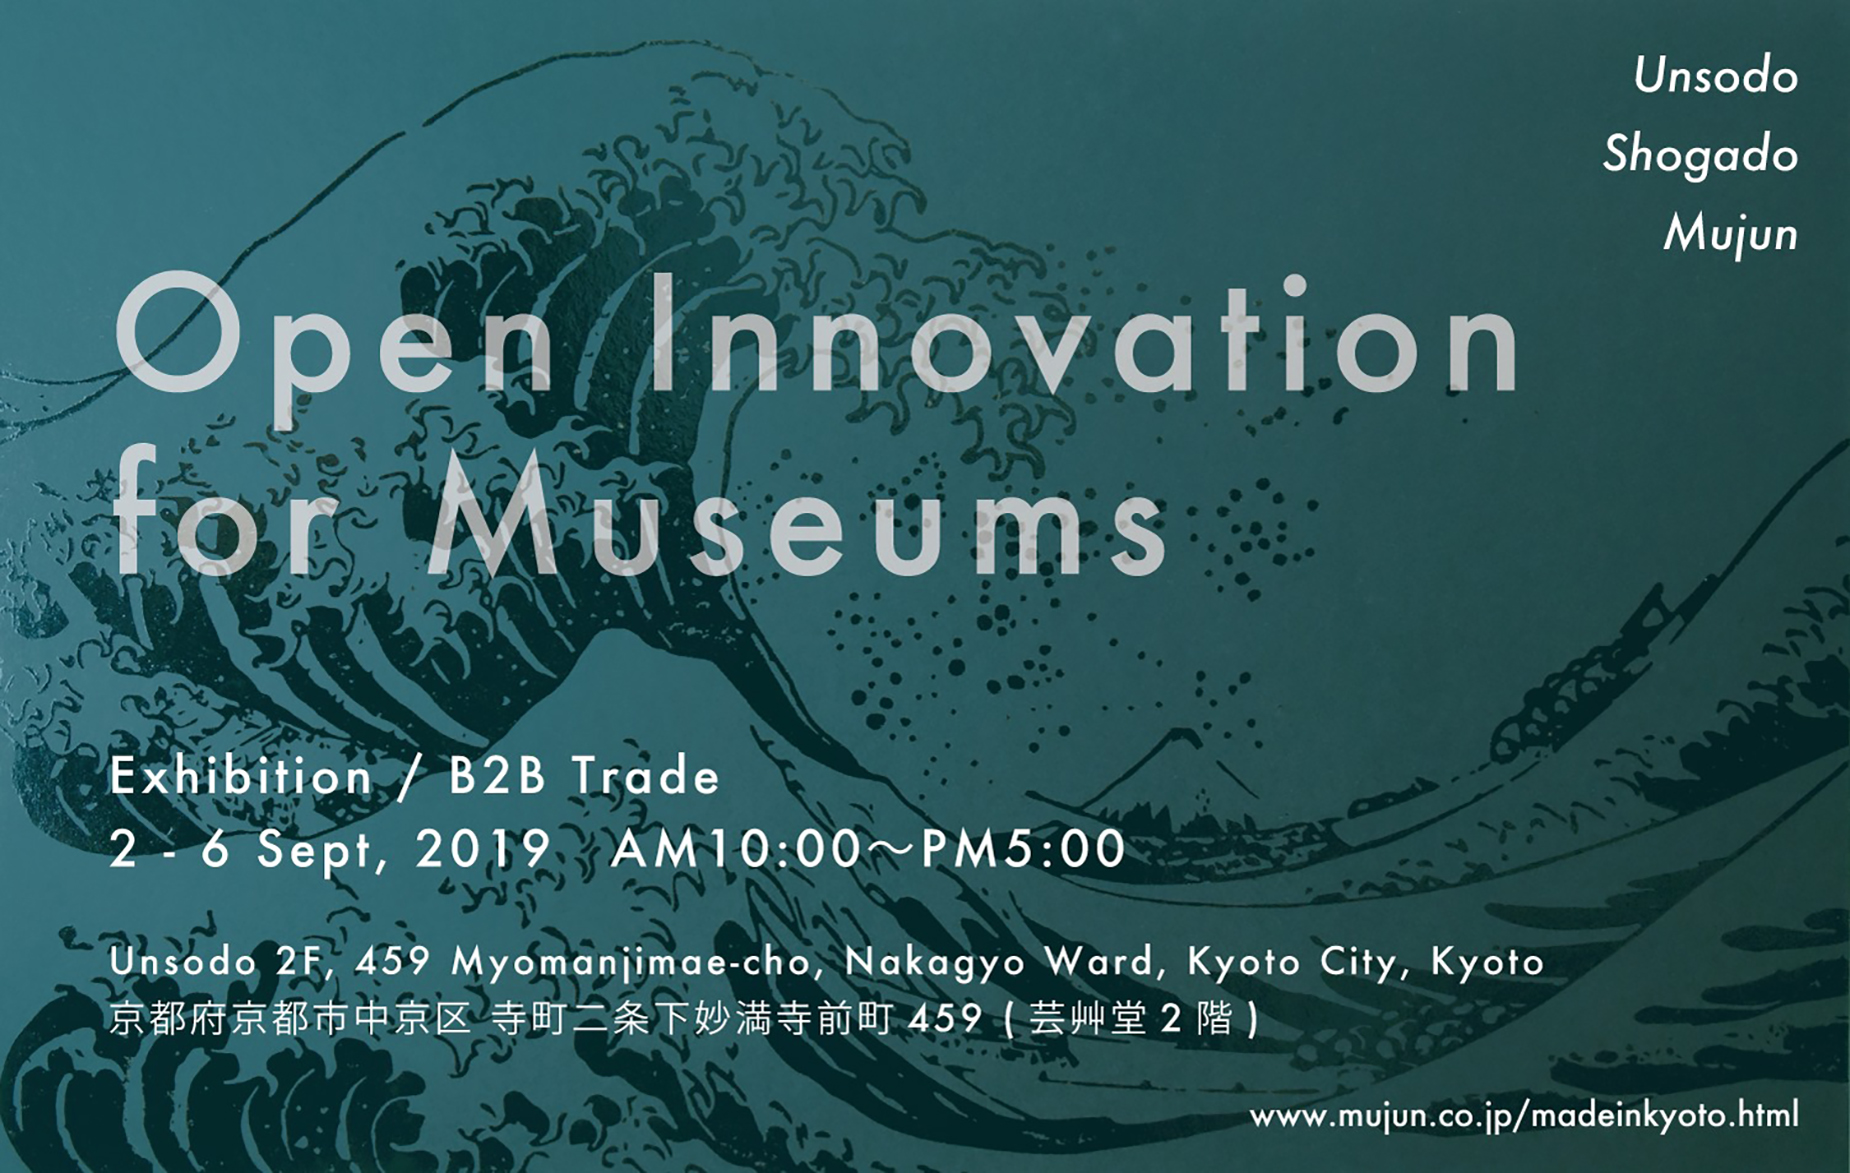 Open Innovation for Museums